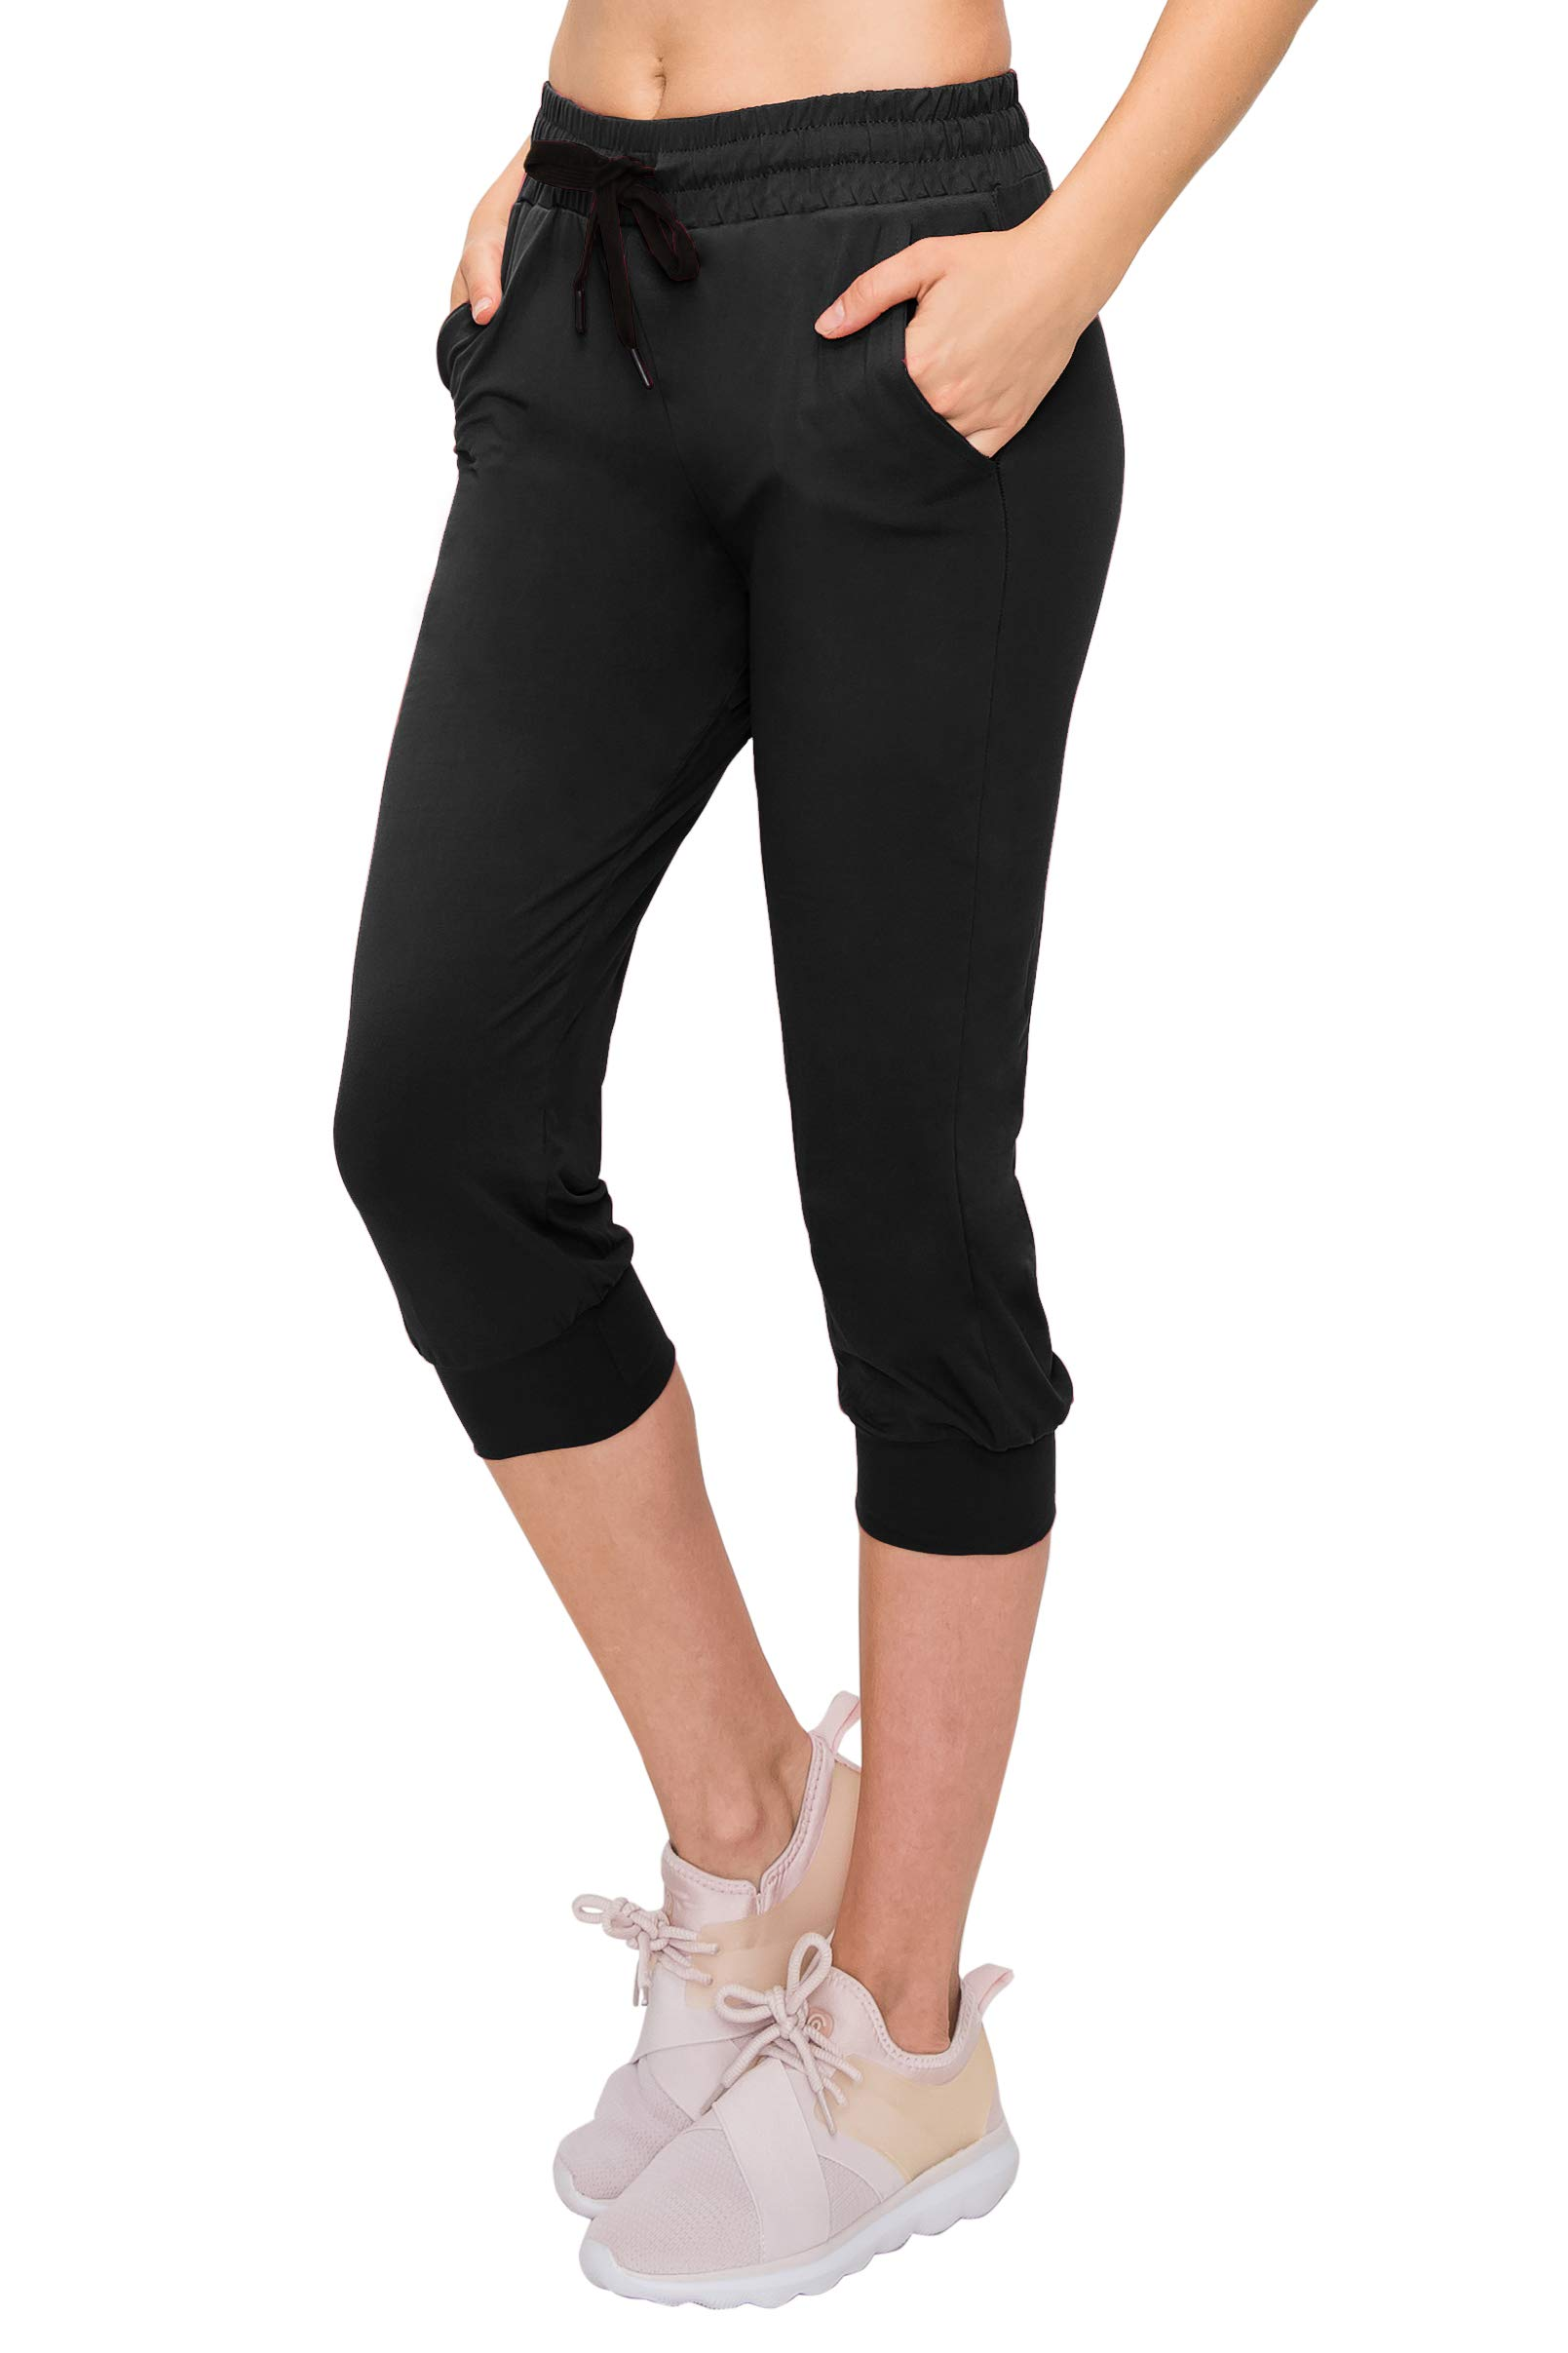 ALWAYS Women's Jogger Pants - Lightweight Skinny Solid Soft Stretch Pockets Sweatpants